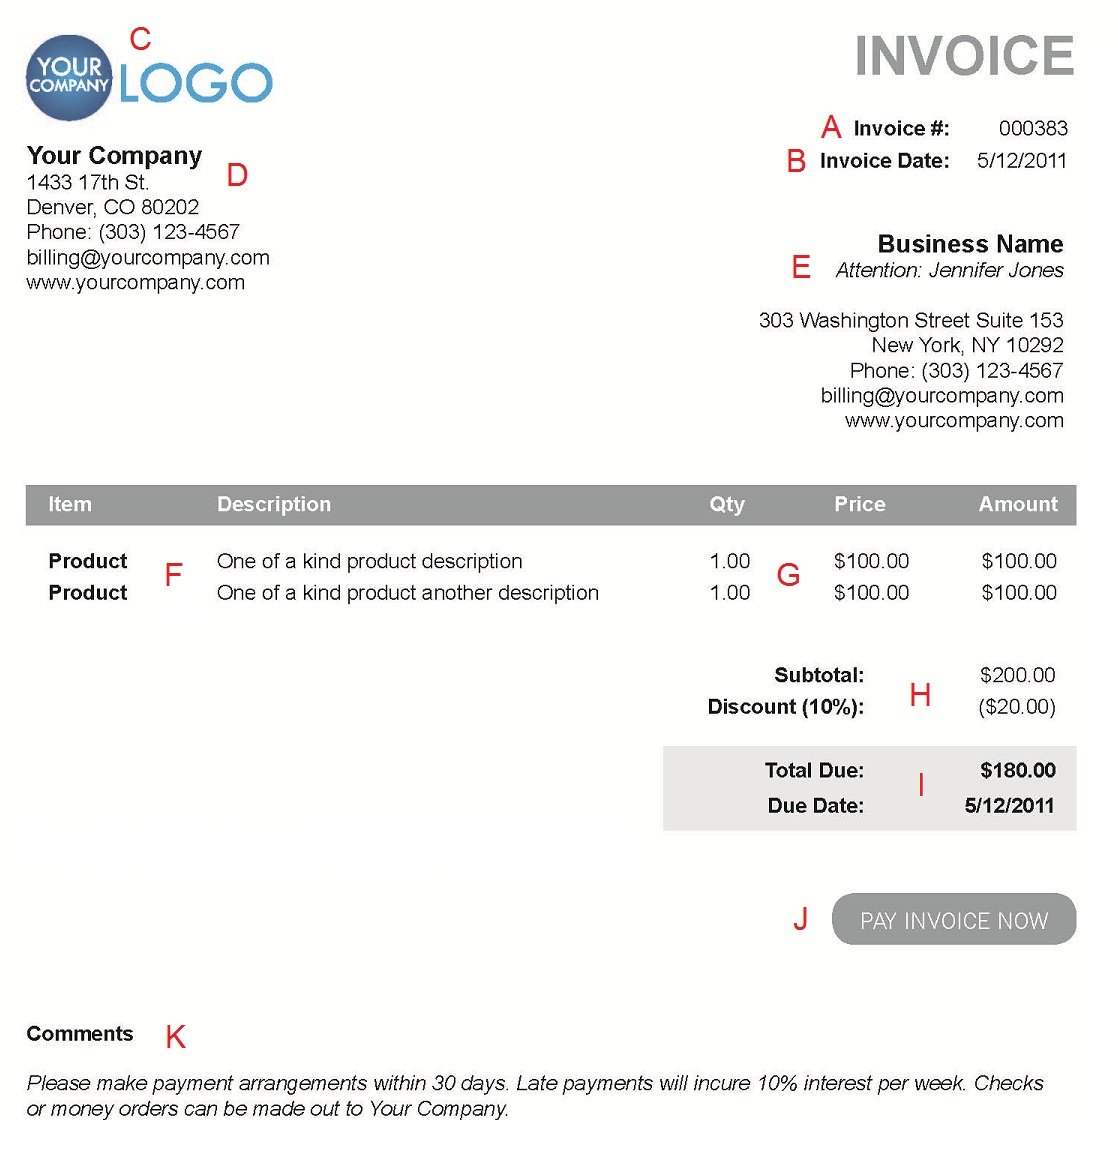 Floobydustus  Unique The  Different Sections Of An Electronic Payment Invoice With Heavenly A  With Captivating Receipts   Payments Account Also Rent Receipts Template Word In Addition Cash Receipts Format And Receipt Books Printed As Well As Sample Rent Receipt Template Additionally Juicing Receipts From Paysimplecom With Floobydustus  Heavenly The  Different Sections Of An Electronic Payment Invoice With Captivating A  And Unique Receipts   Payments Account Also Rent Receipts Template Word In Addition Cash Receipts Format From Paysimplecom